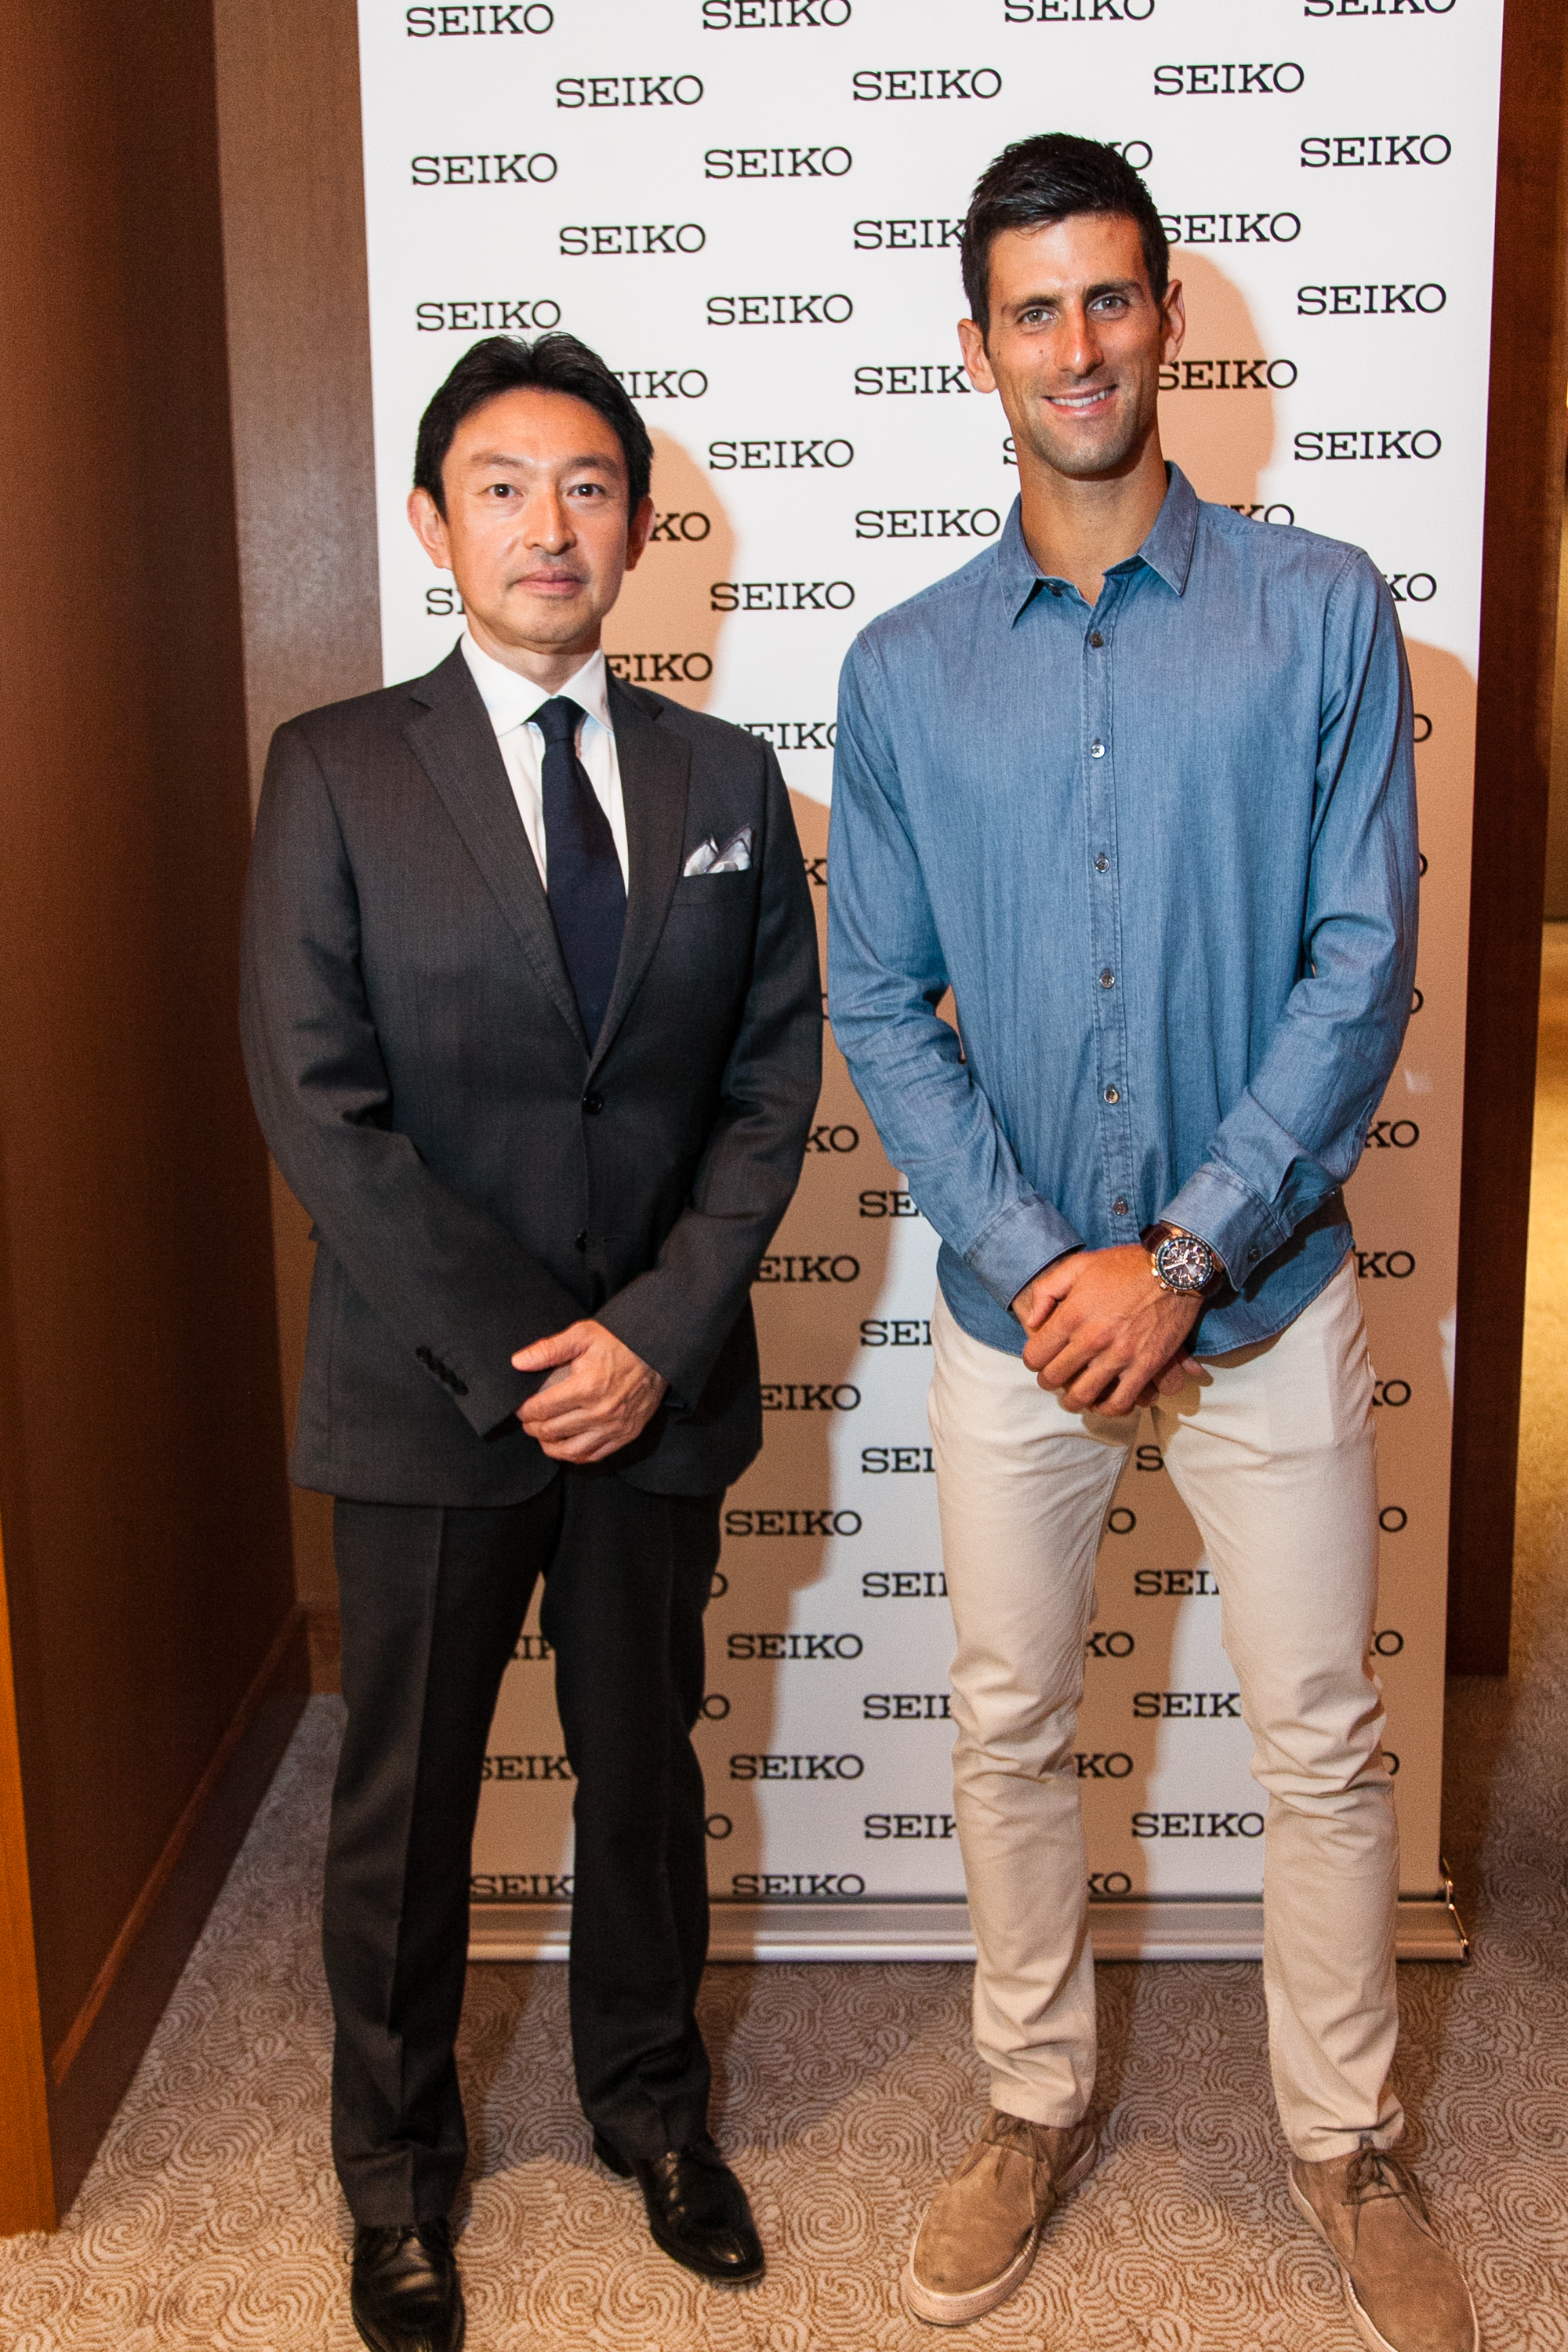 Novak Djokovic with Seiko President and CEO Mr. Yosh Kawada